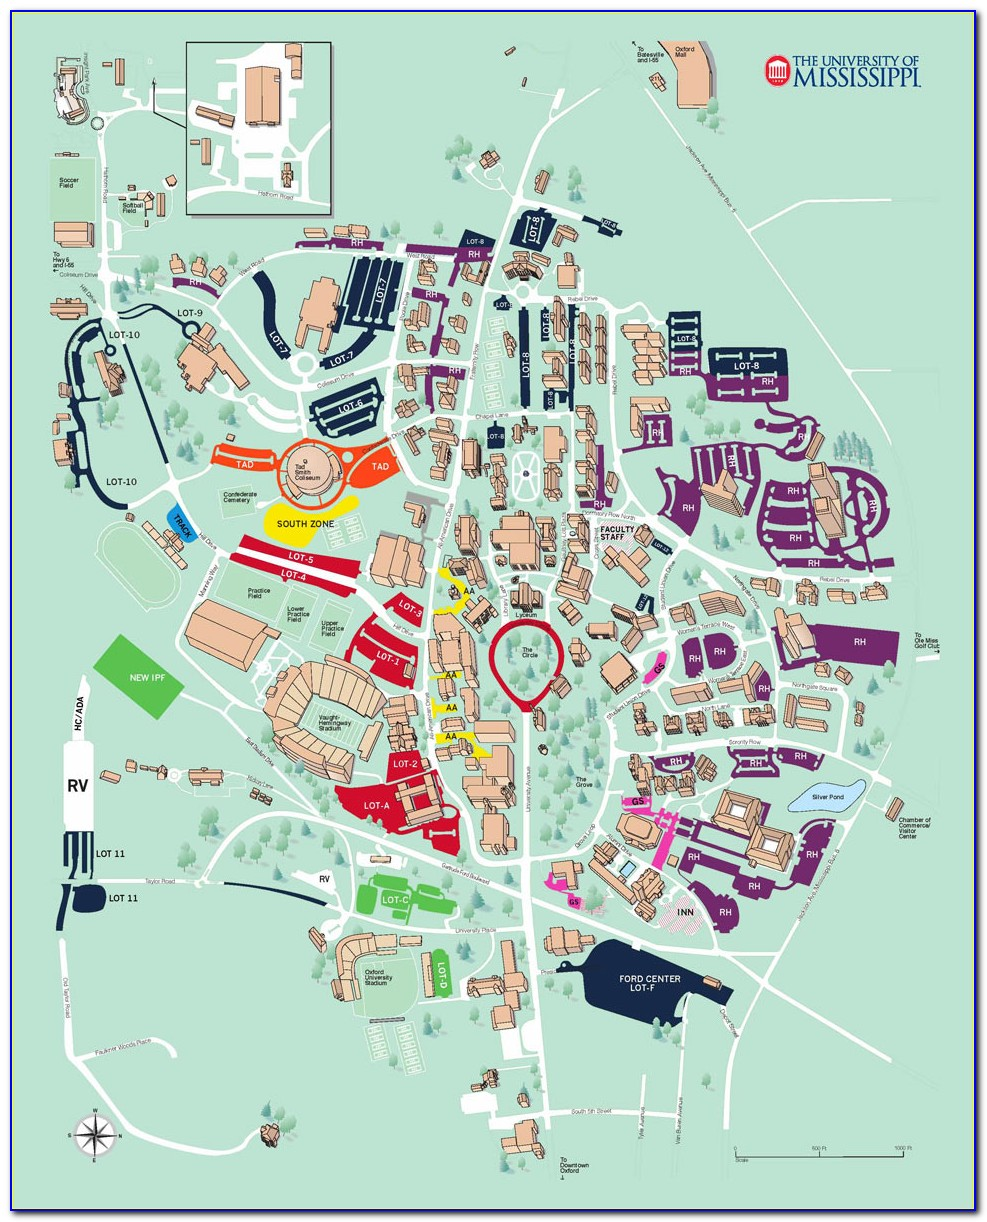 Ole Miss Campus Map Parking